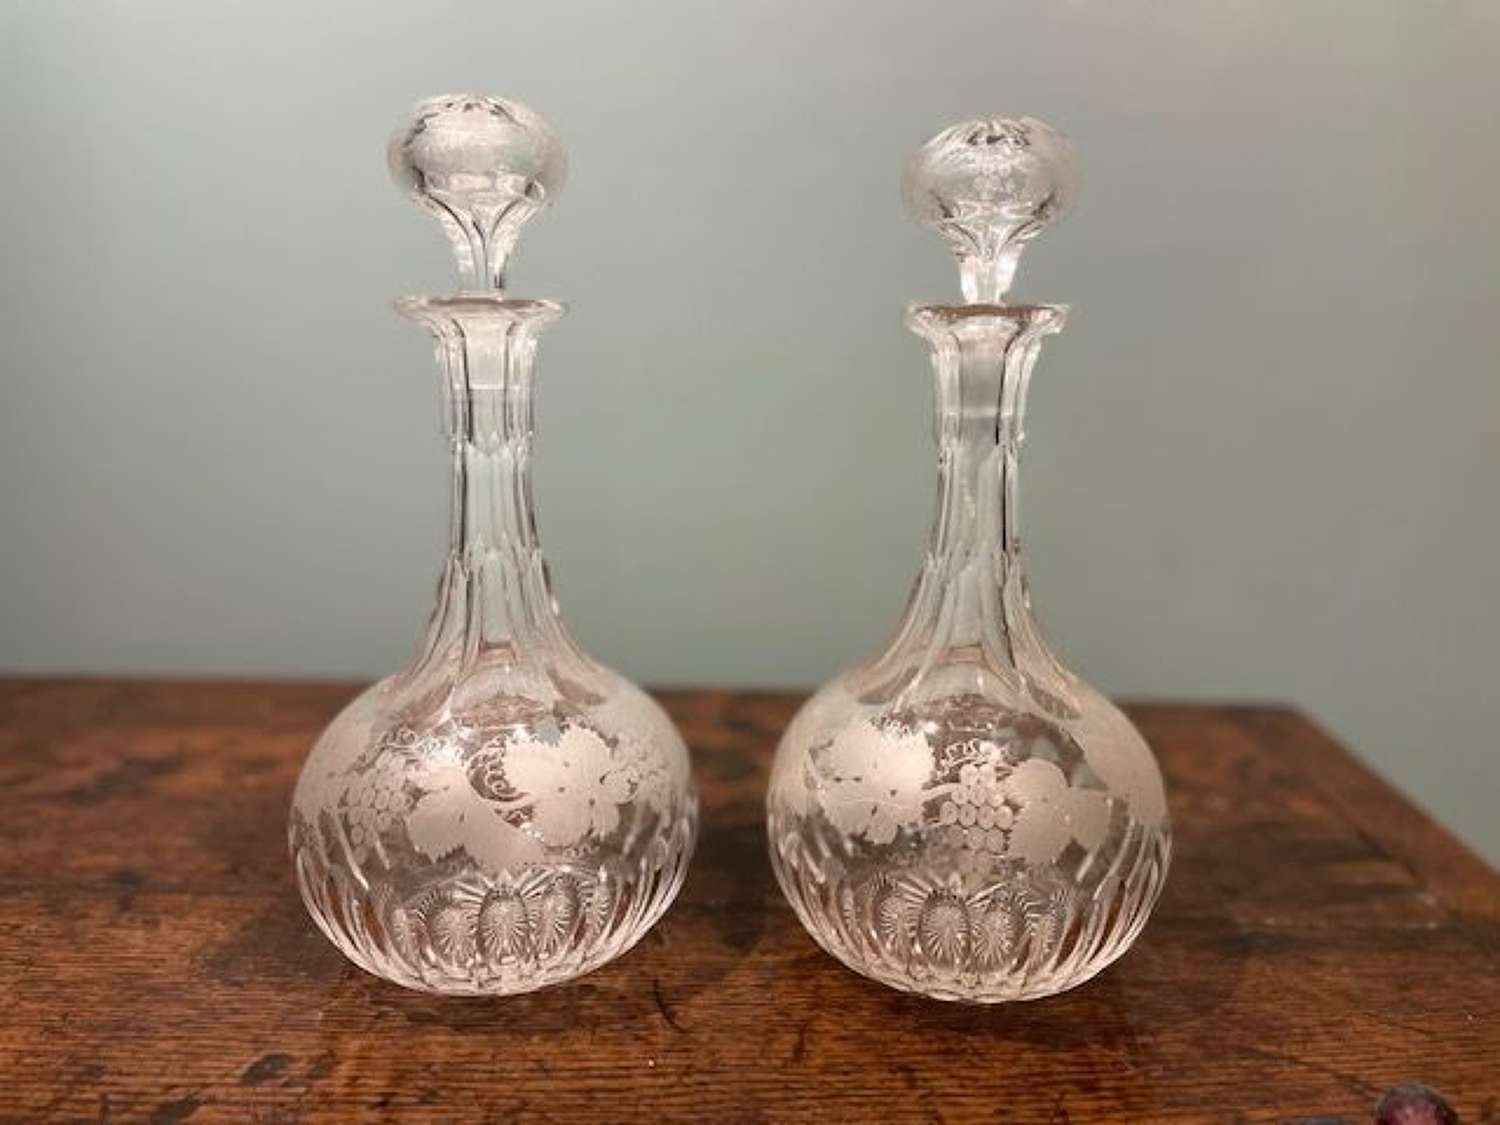 Pair of mid 19th c. Shaft & Globe decanters with grapevine motifs